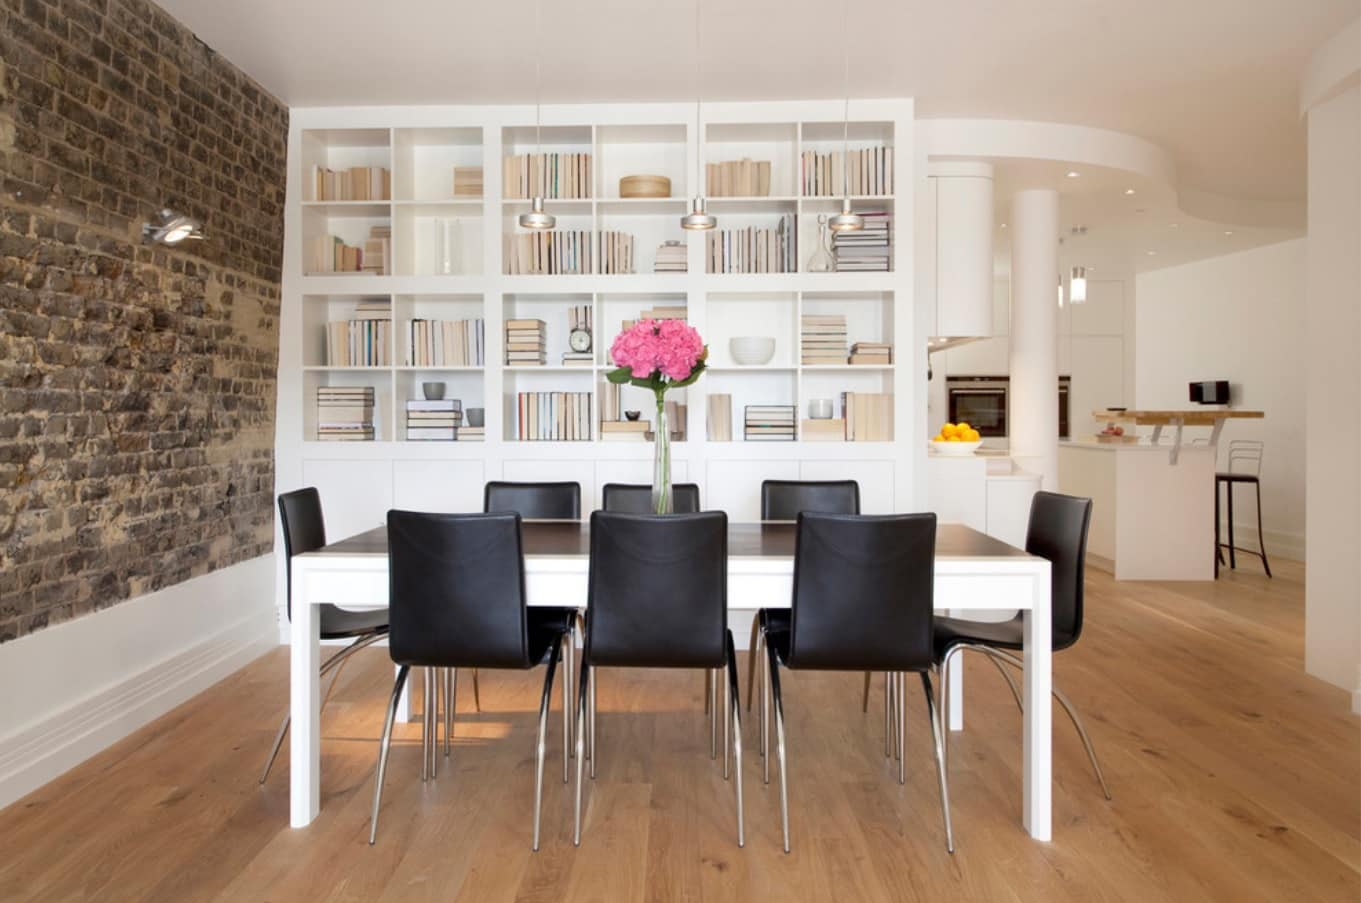 Black dining set for Casual styled room with open bookshelf